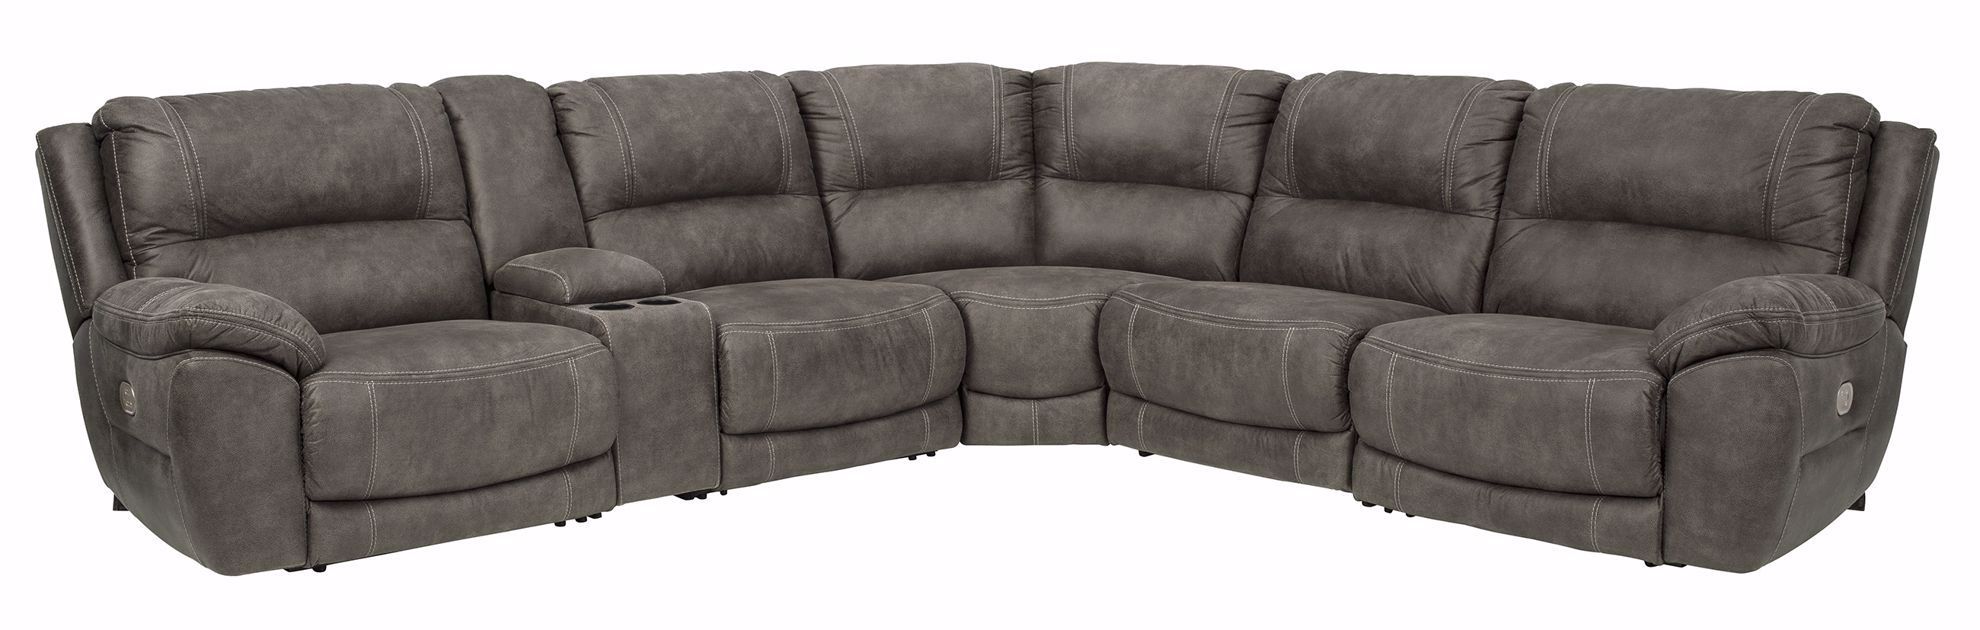 Picture of Cranedall Quarry 6-Piece Power Reclining Sectional